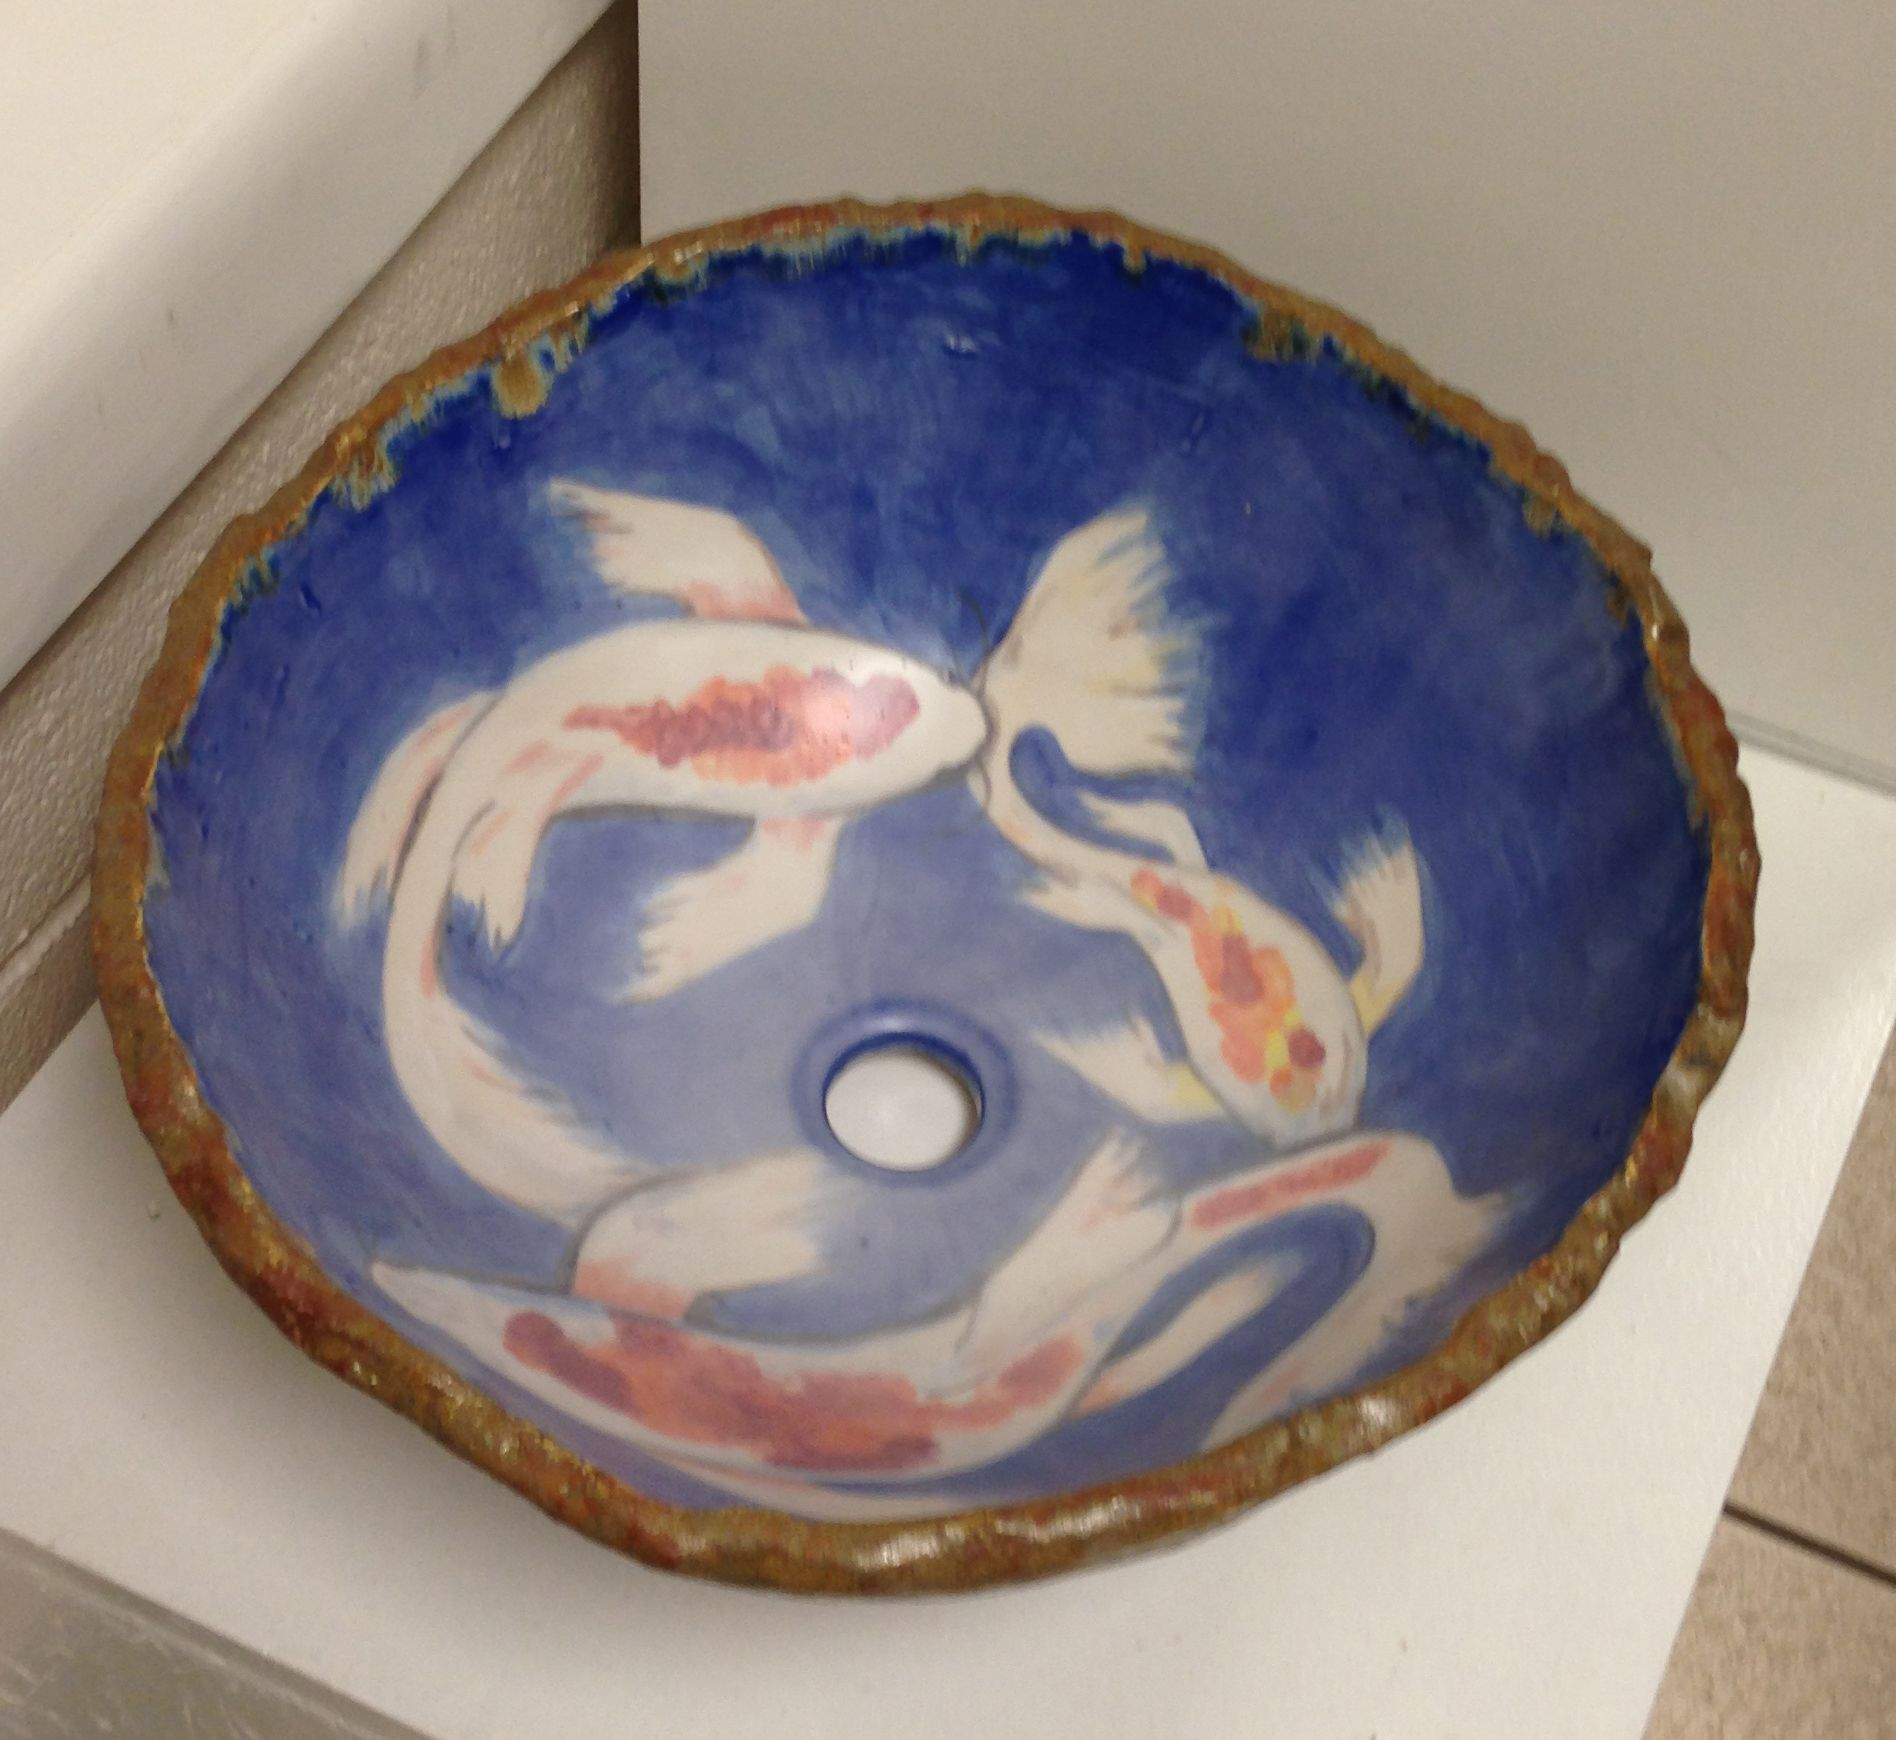 Custom Made Koi Fish Vessel Sink Bowl By Treetop Studio